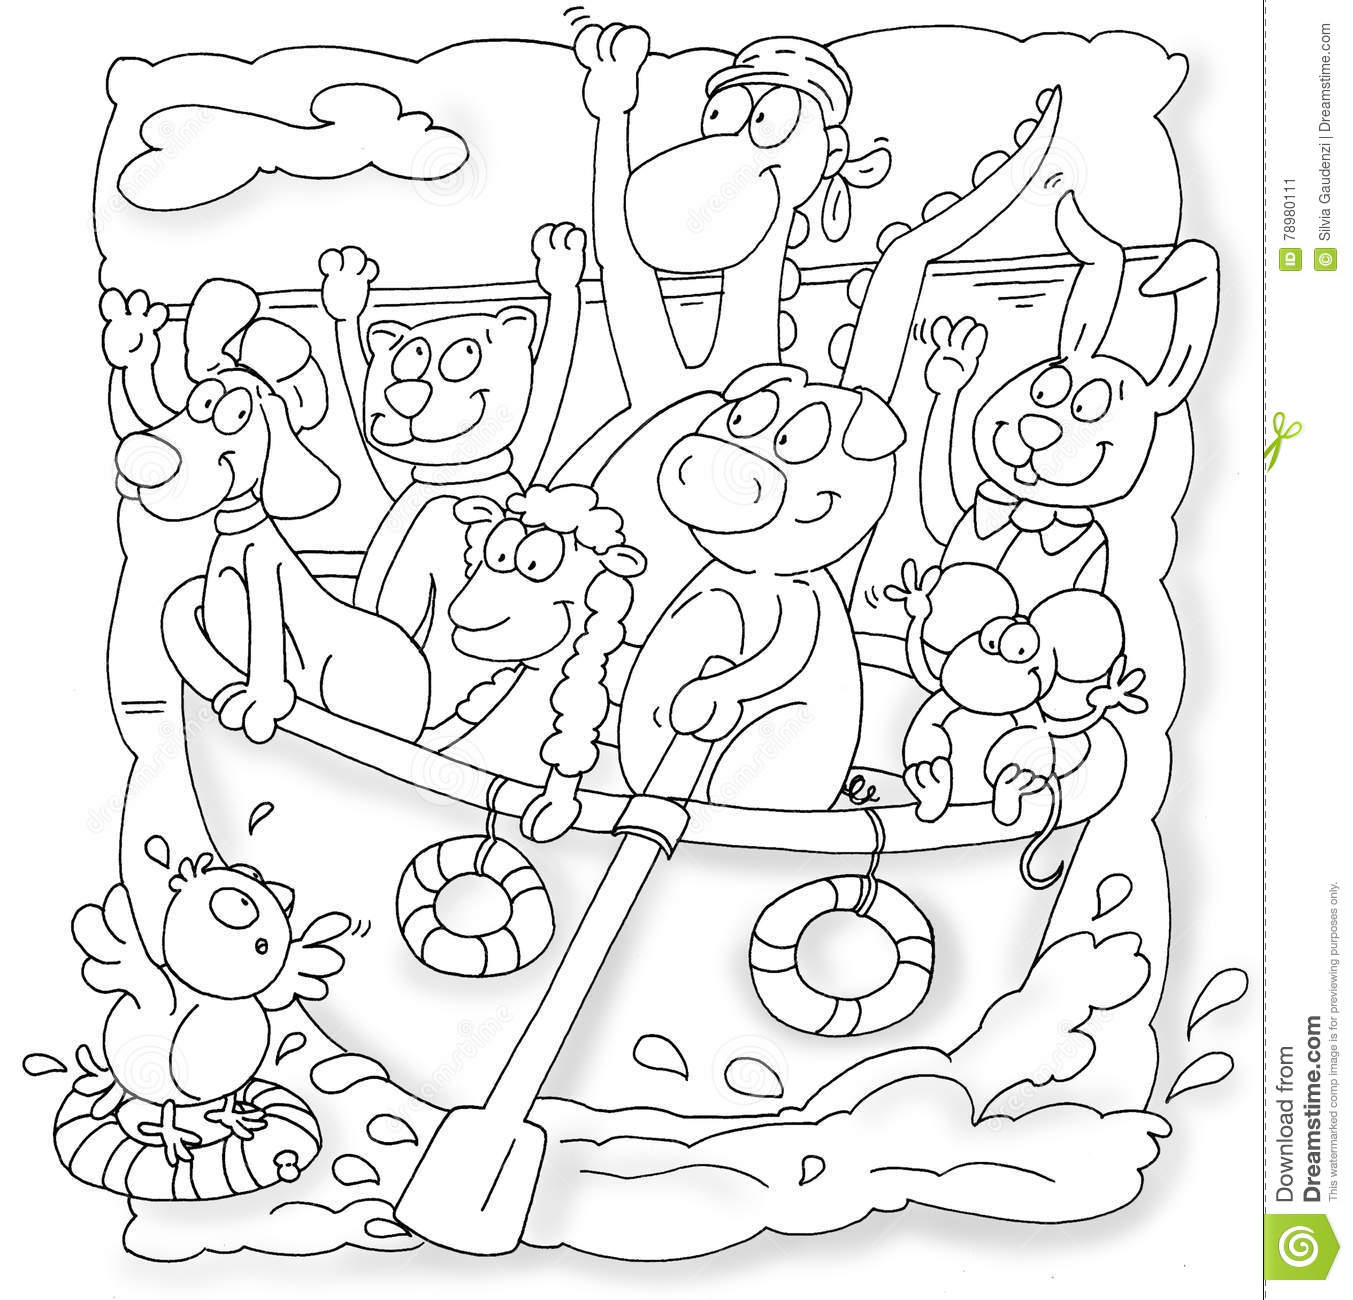 Download Rowing Boat With Animals Pig, Mouse, Bird Upwards Lifesaver Goat And Dog Stock Illustration - Illustration of rowing, mouse: 78980111